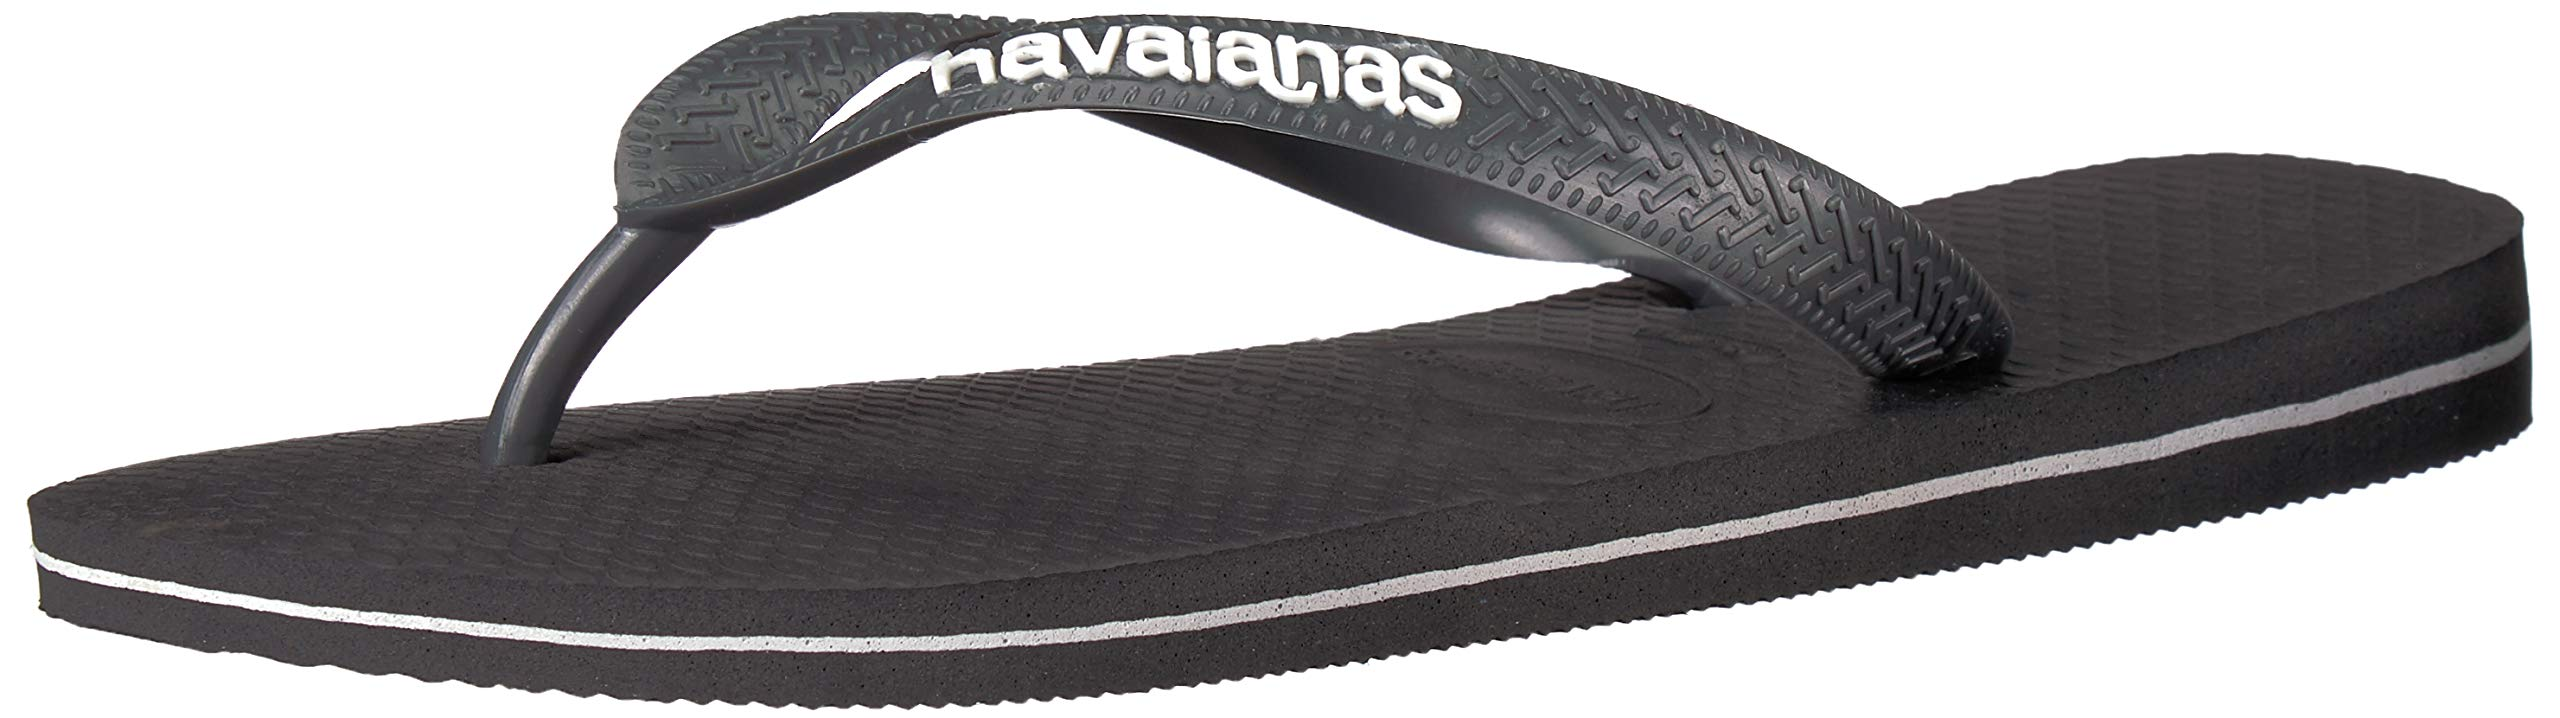 Havaianas Men's Top Logo Filete Sandal,Grey/White,43/44 BR (11-12 M US)